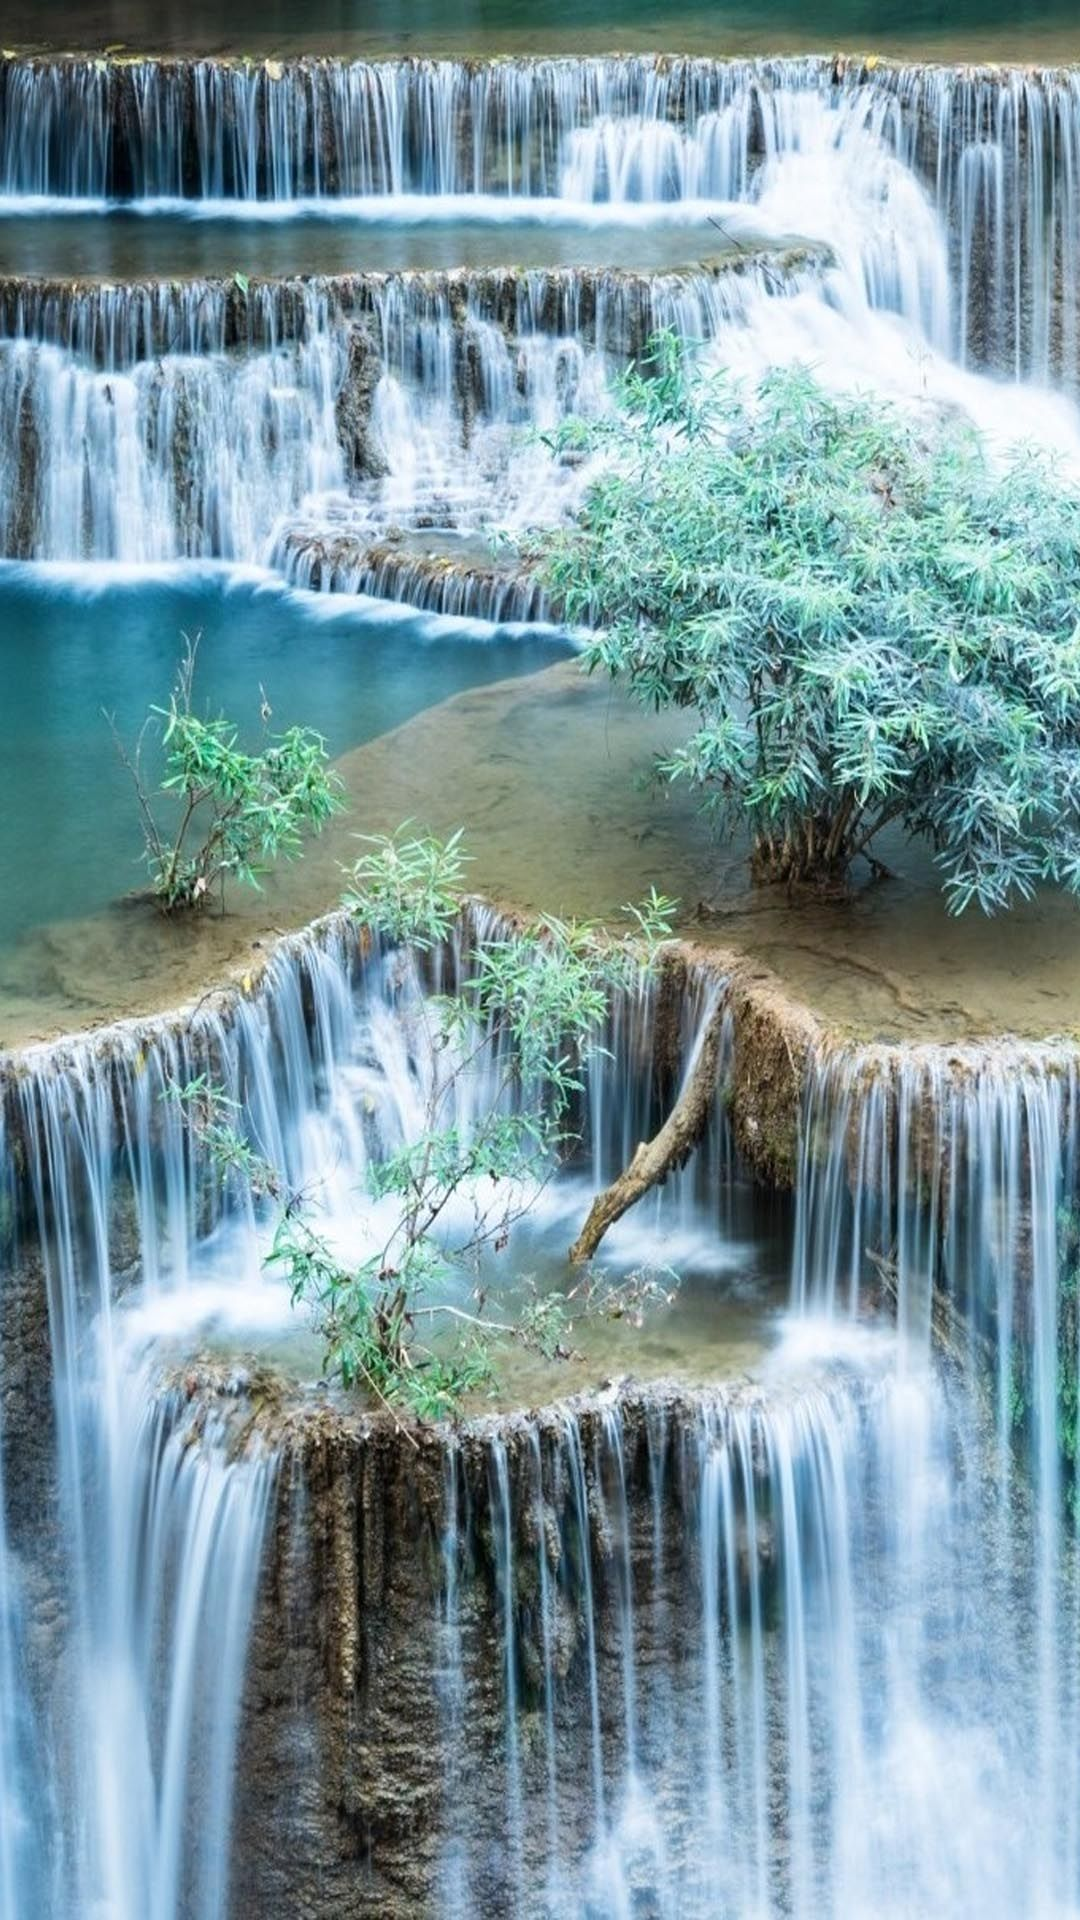 Amazing Nature Waterfall Hd Iphone Wallpaper Beautiful Nature Waterfall Nature